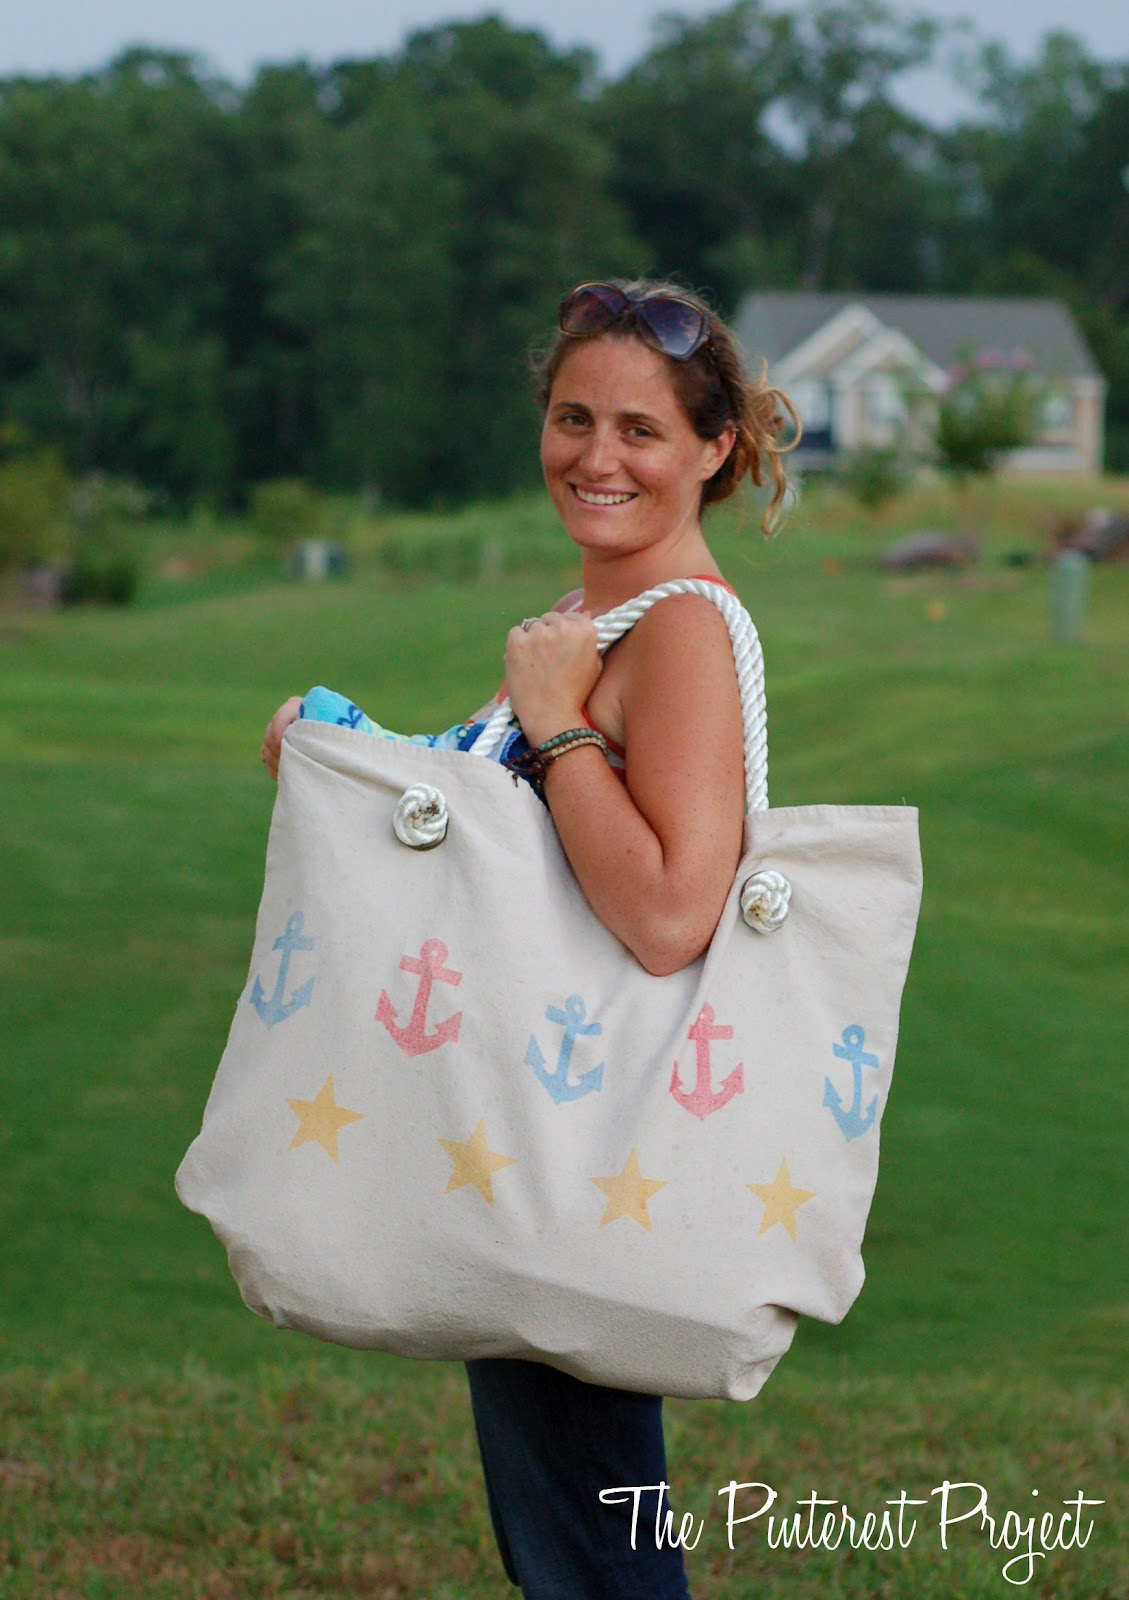 A Beach Bag for STUFF!! | The Pinterest Project